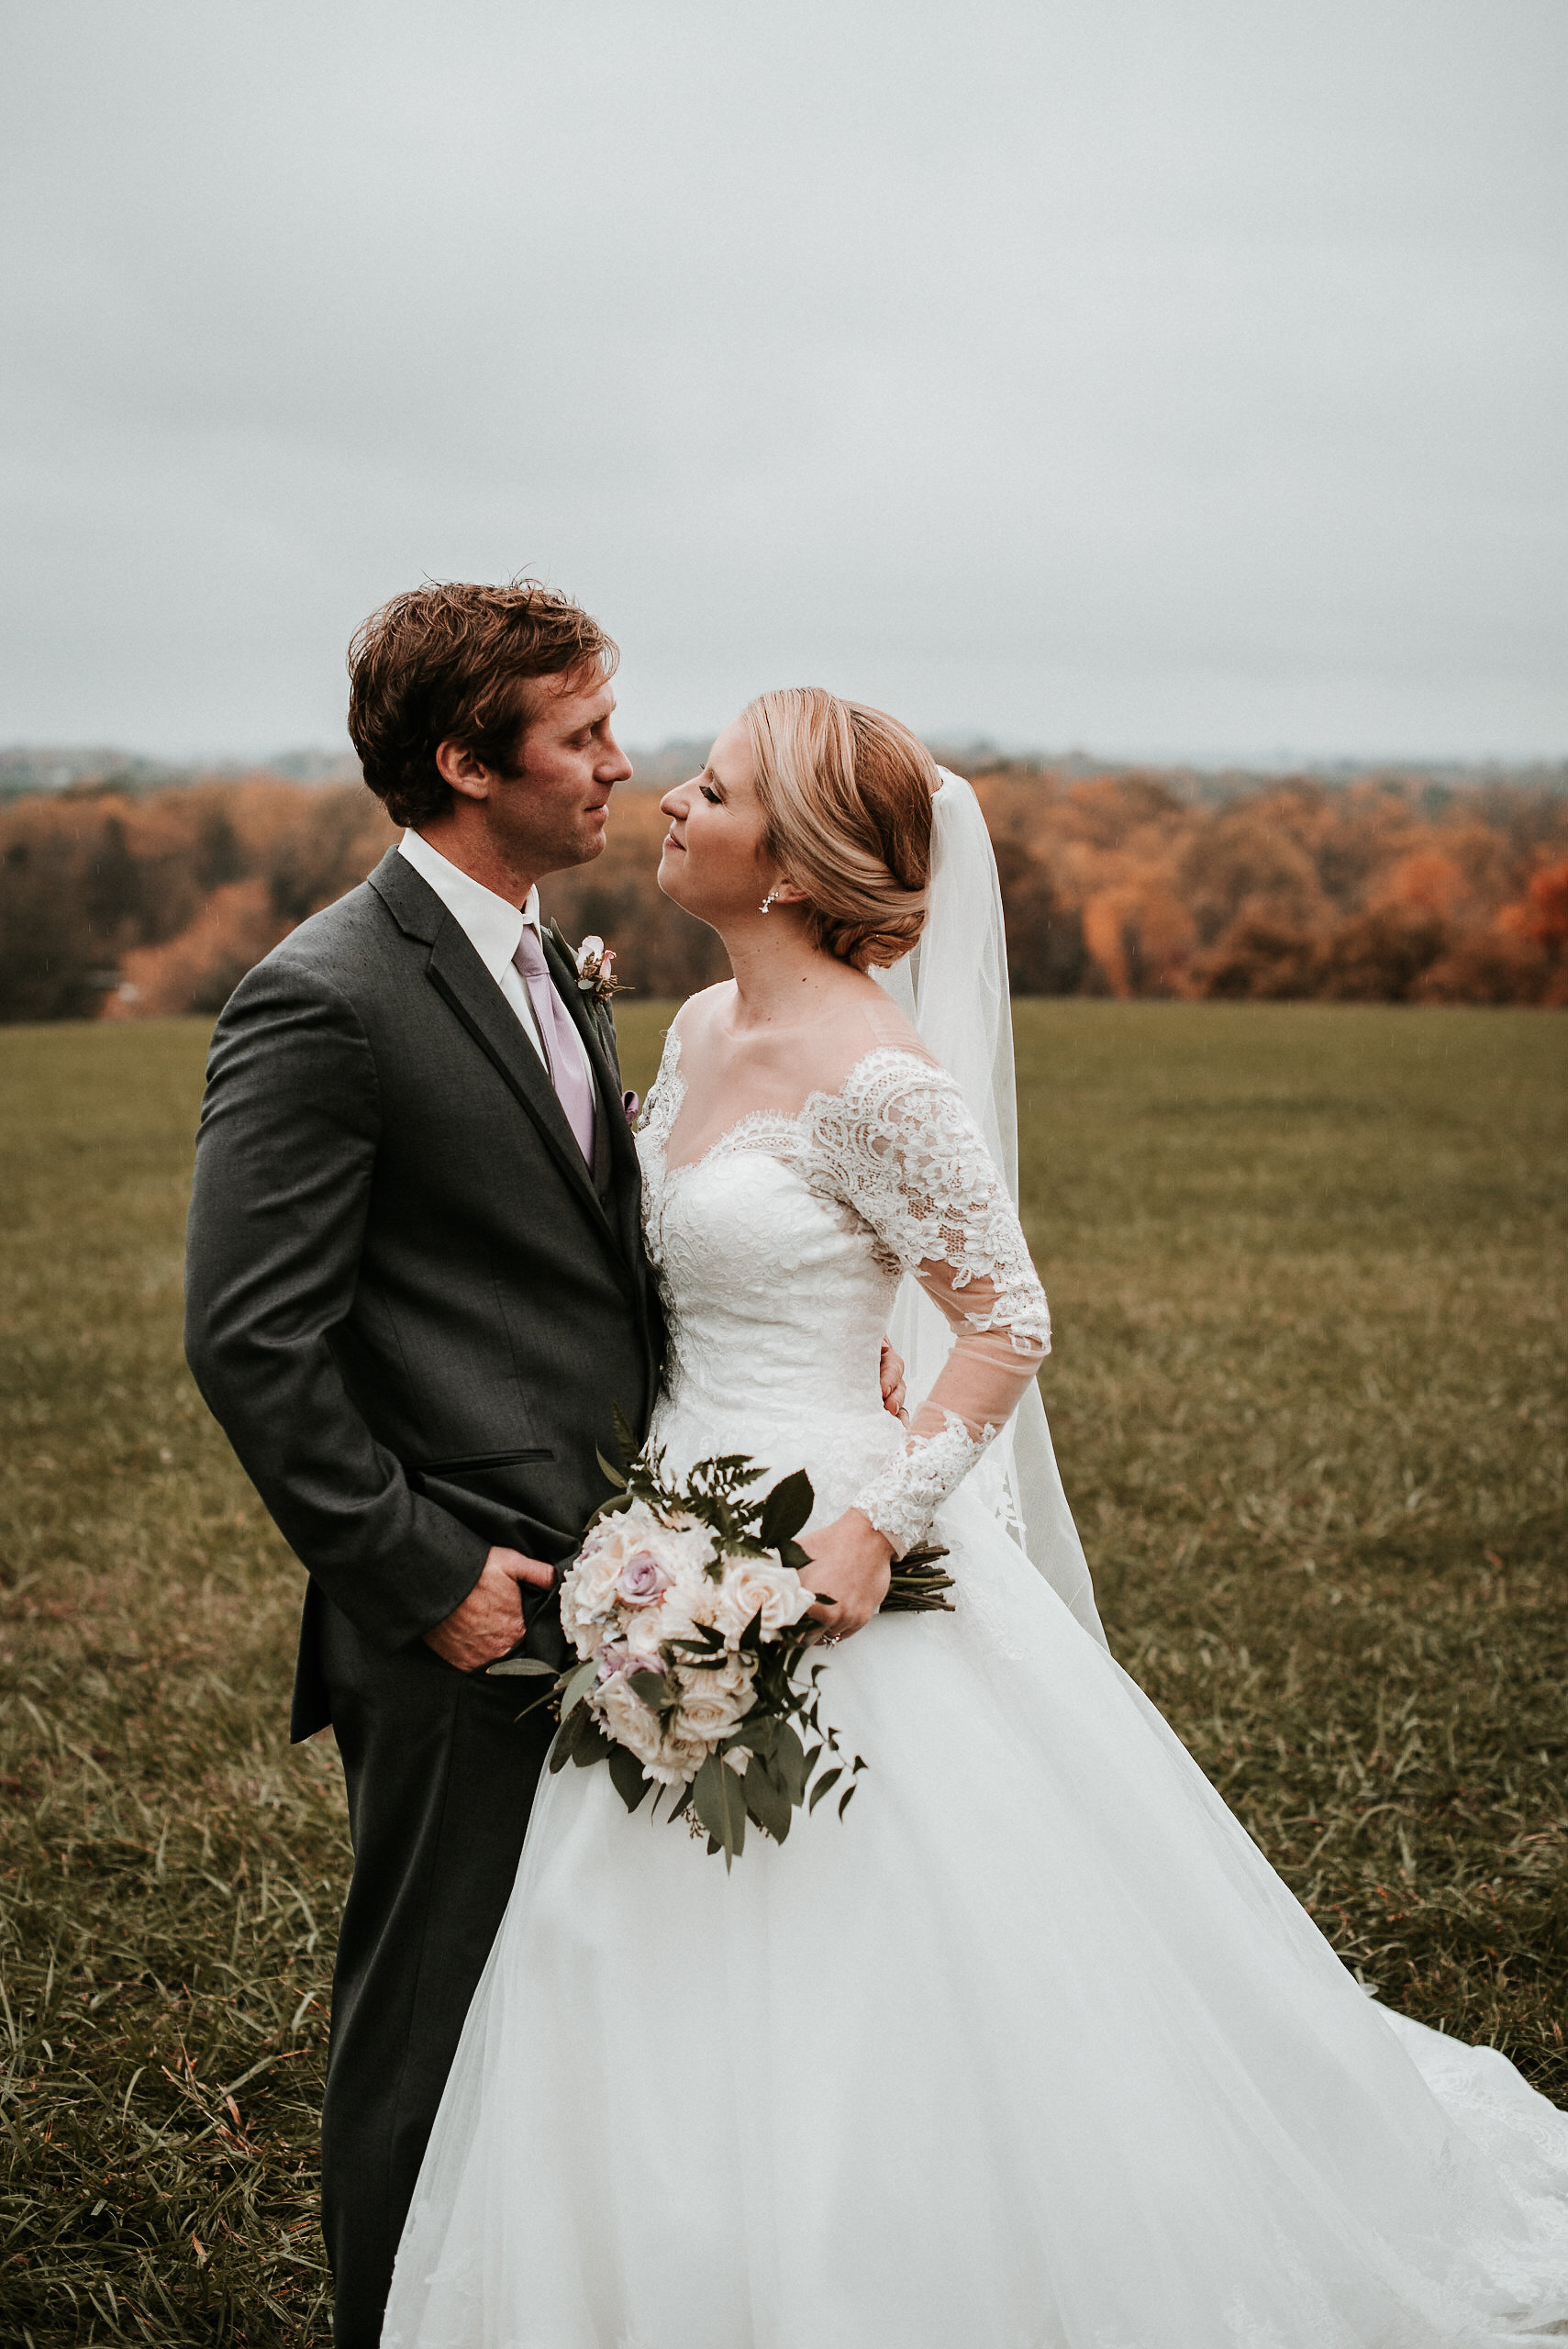 Bride and groom kissing in field